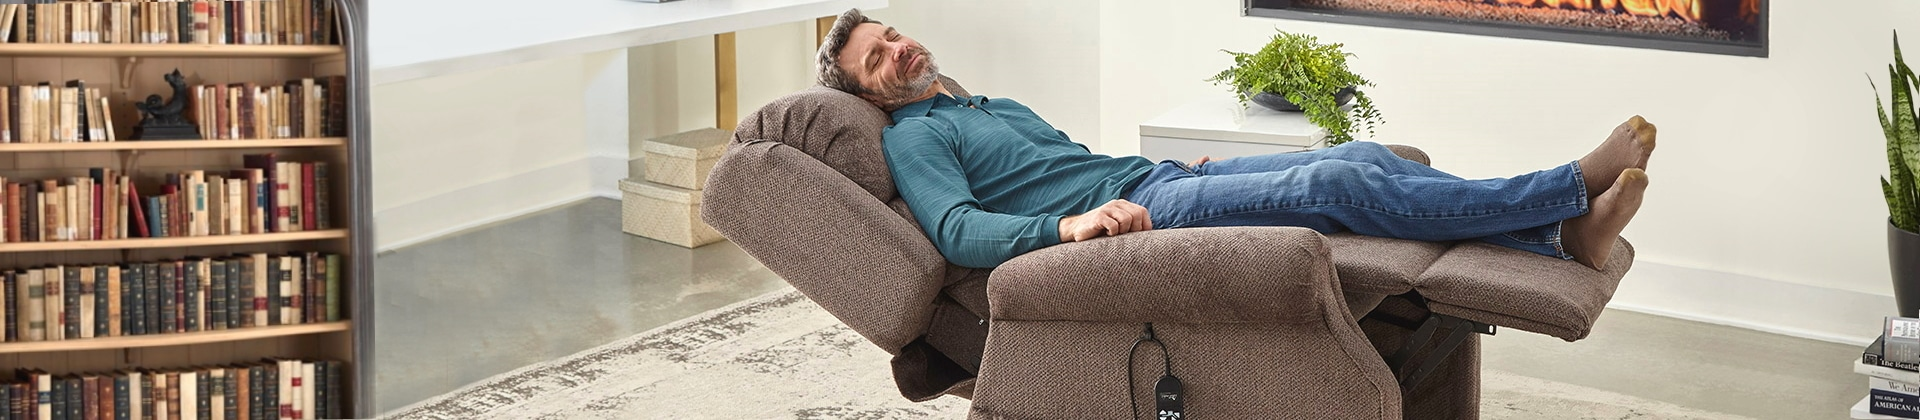 Why Do I Sleep Better In a Recliner Than In a Bed?